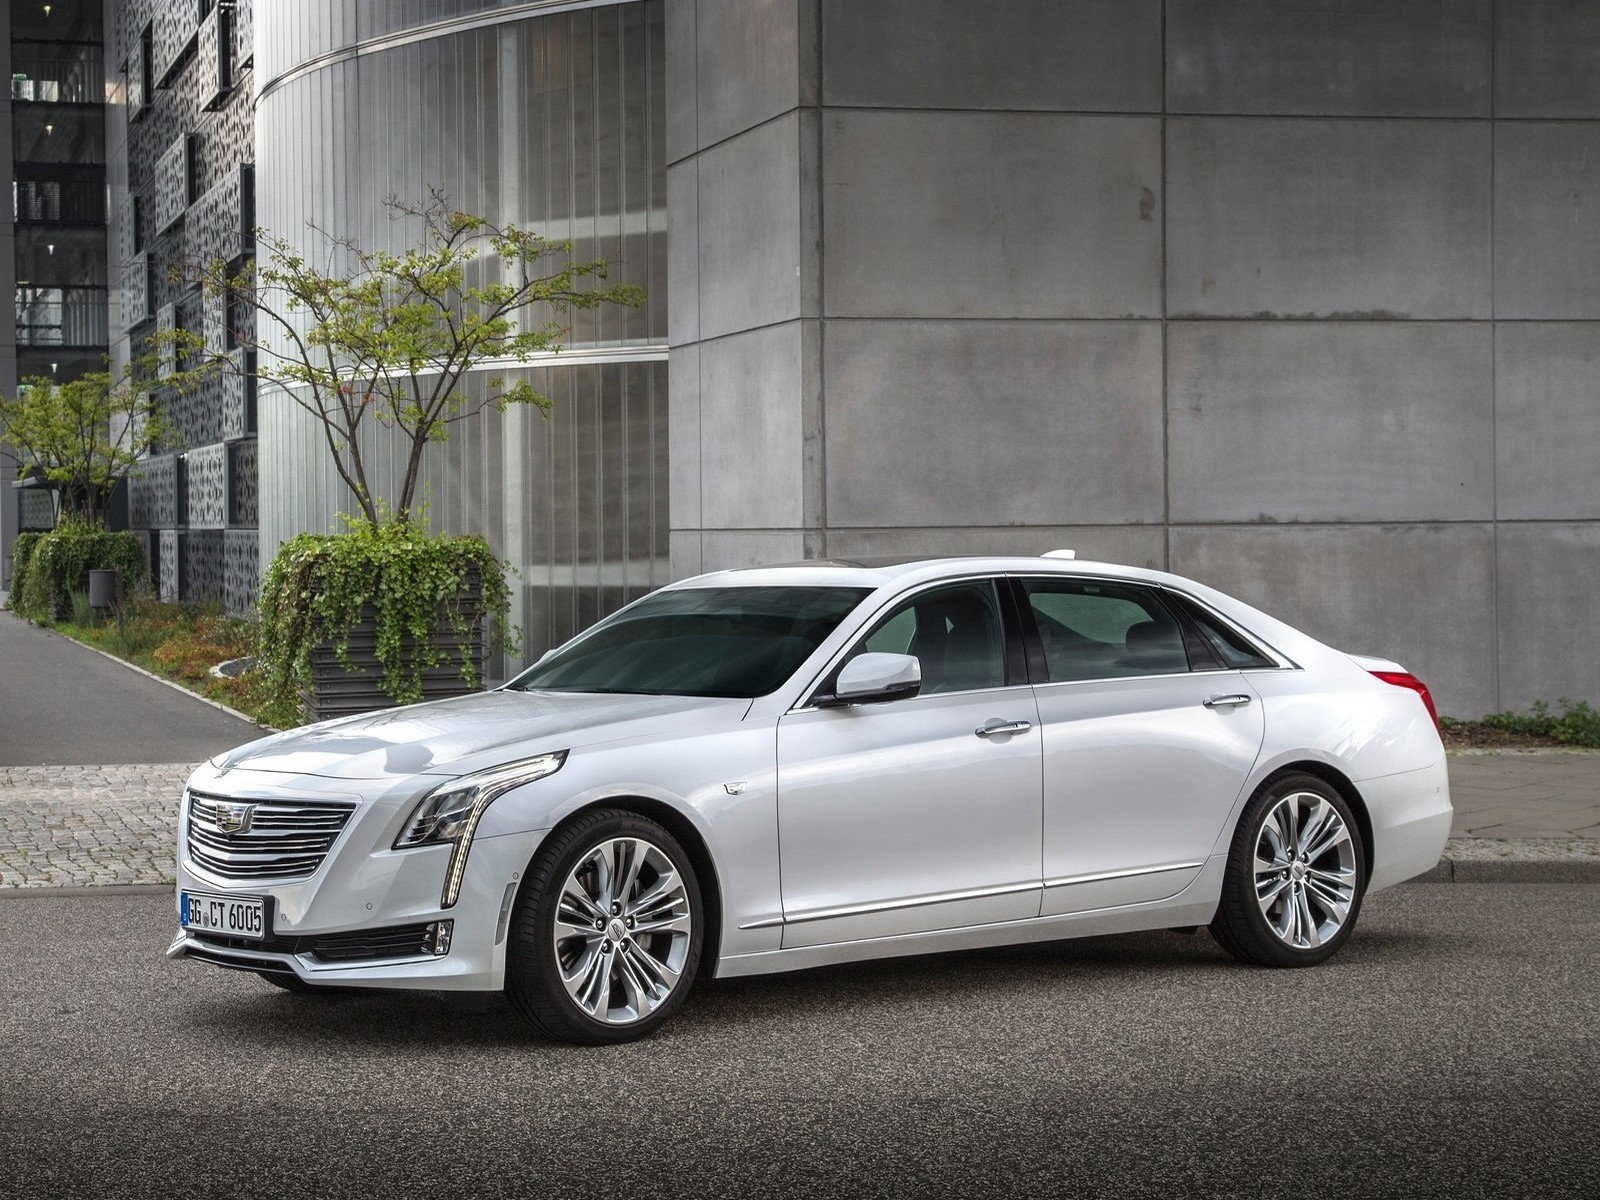 2017 Cadillac CT6 EU Version